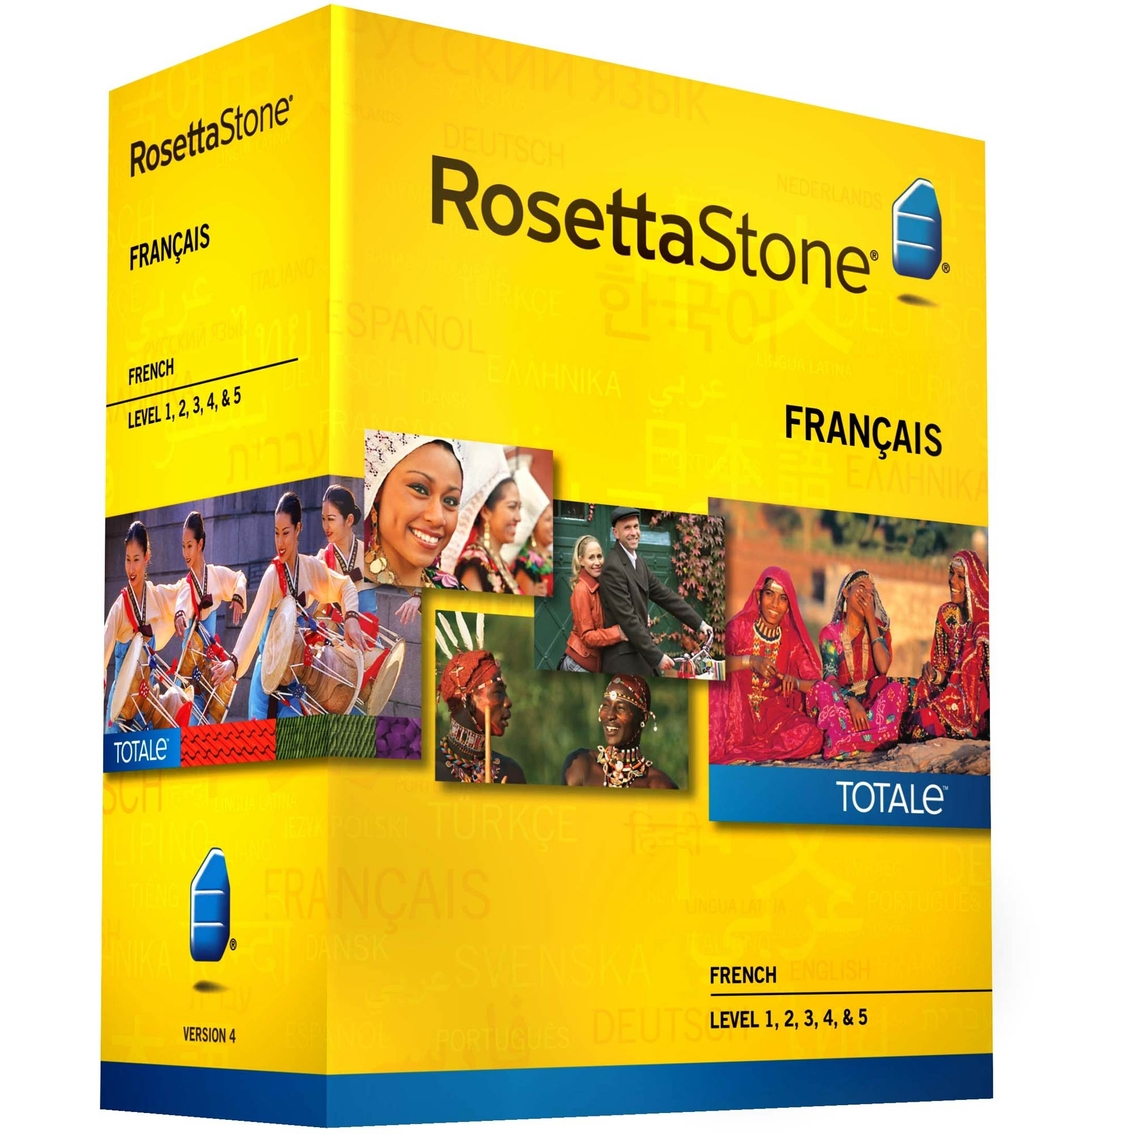 Does Rosetta Stone (new totale version) work?